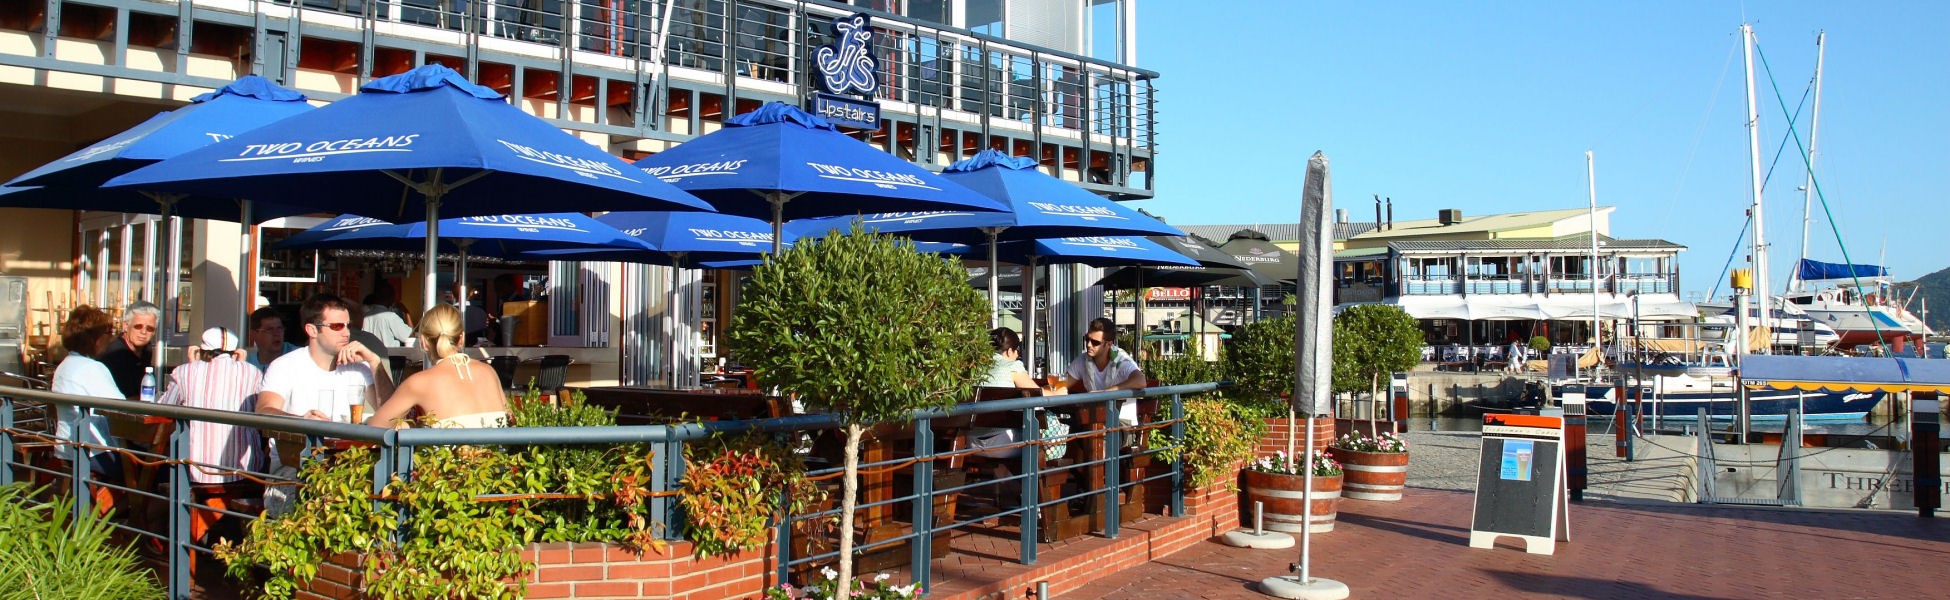 Restaurants at the Waterfront, Knysna